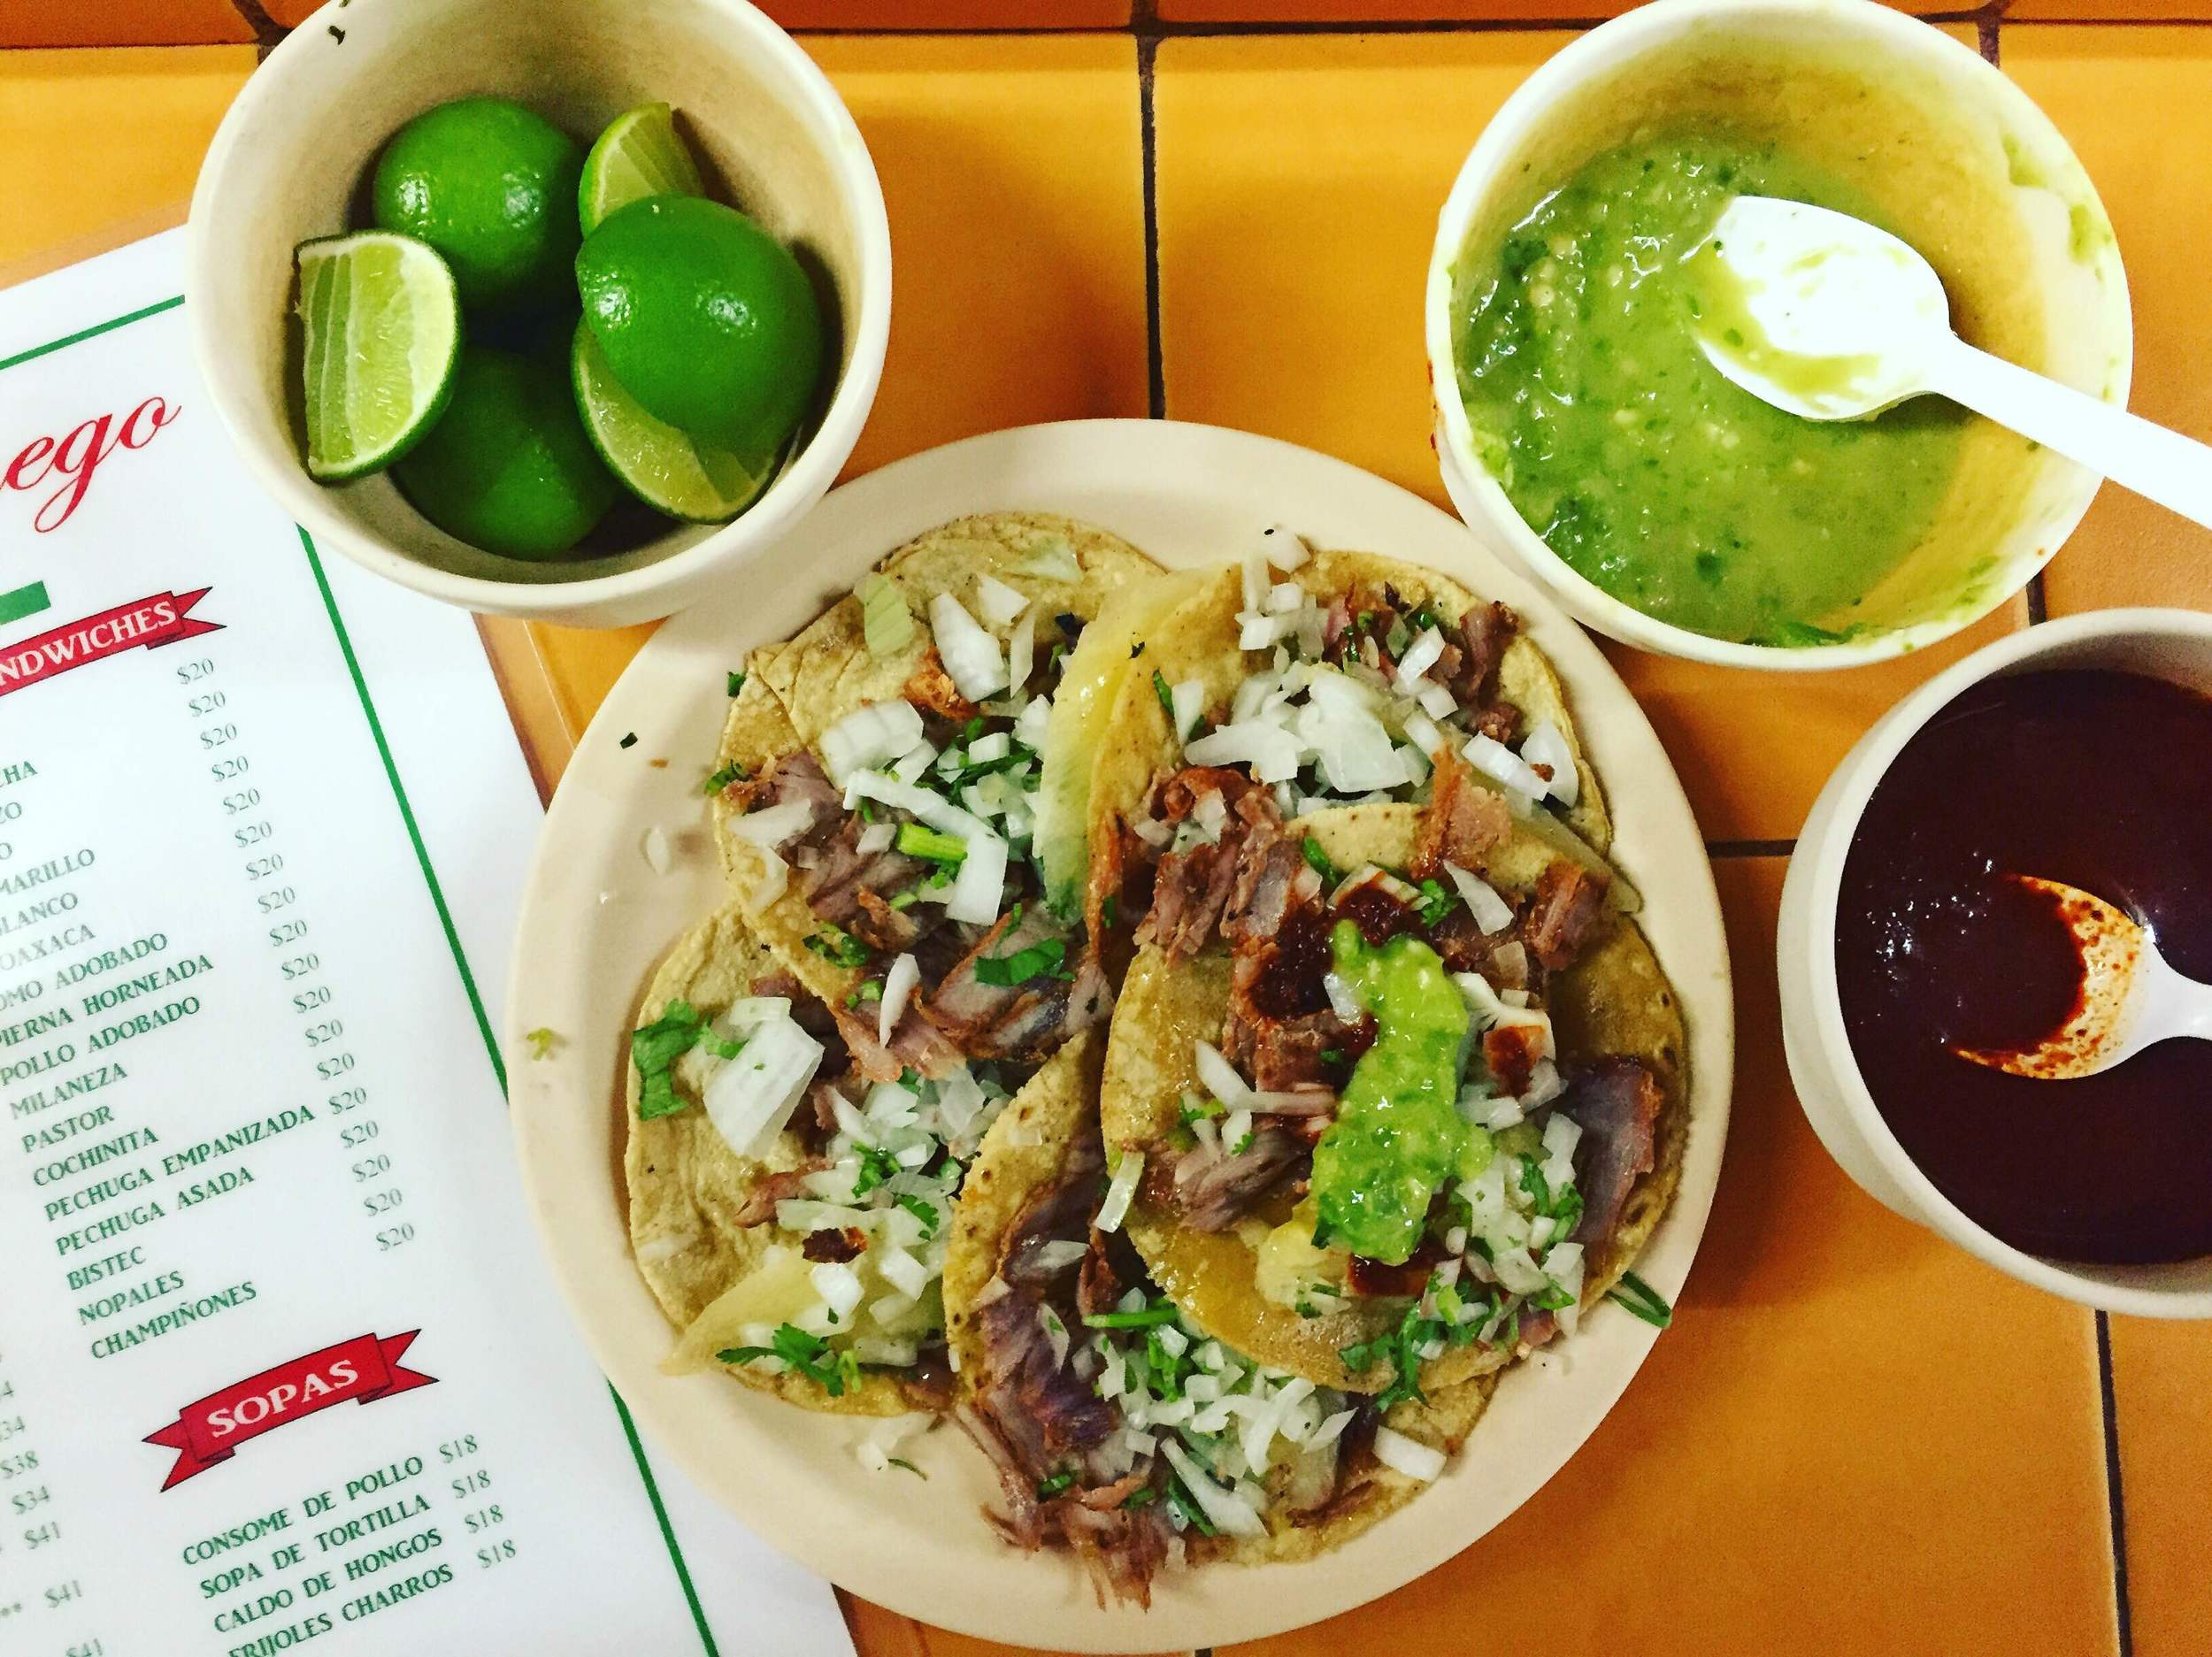 Tacos el pastor, fist meal after I landed in Mexico City